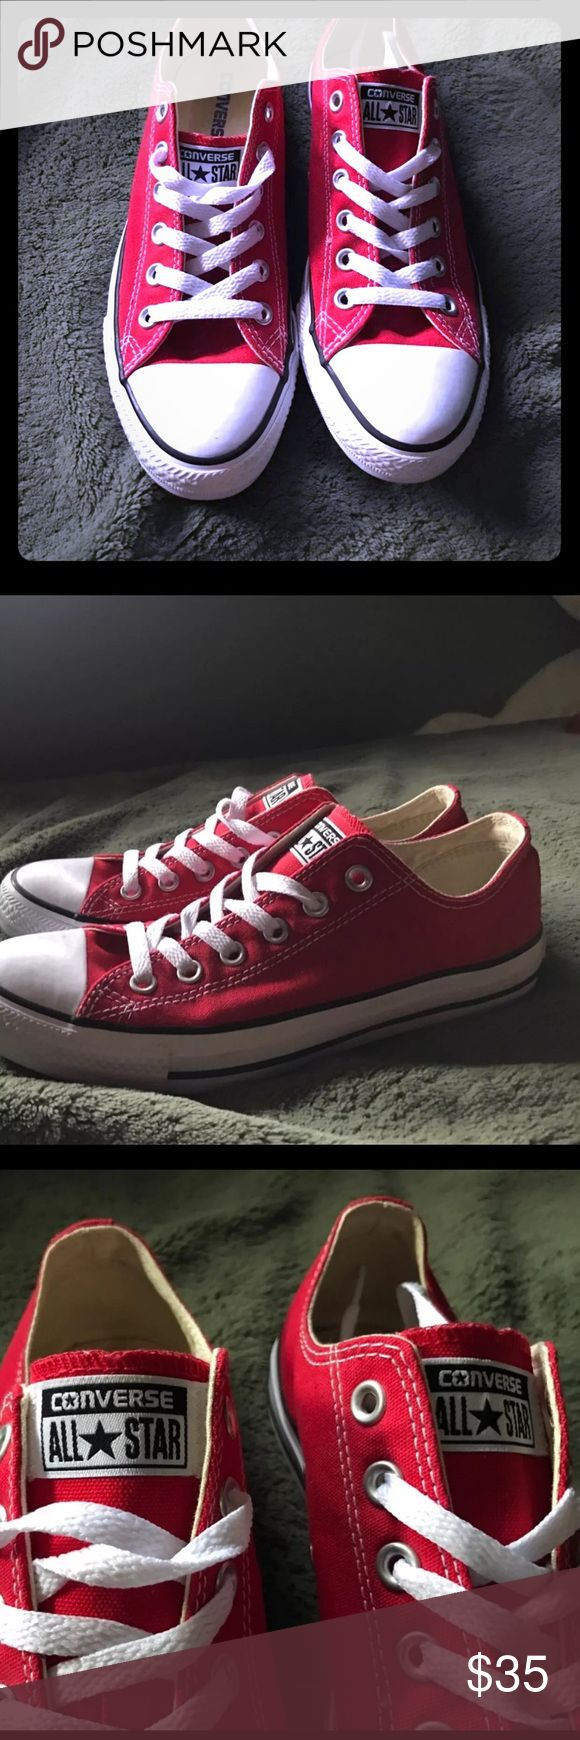 Very cute red converse Size 8.5 excellent converse. Converse Shoes Sneakers